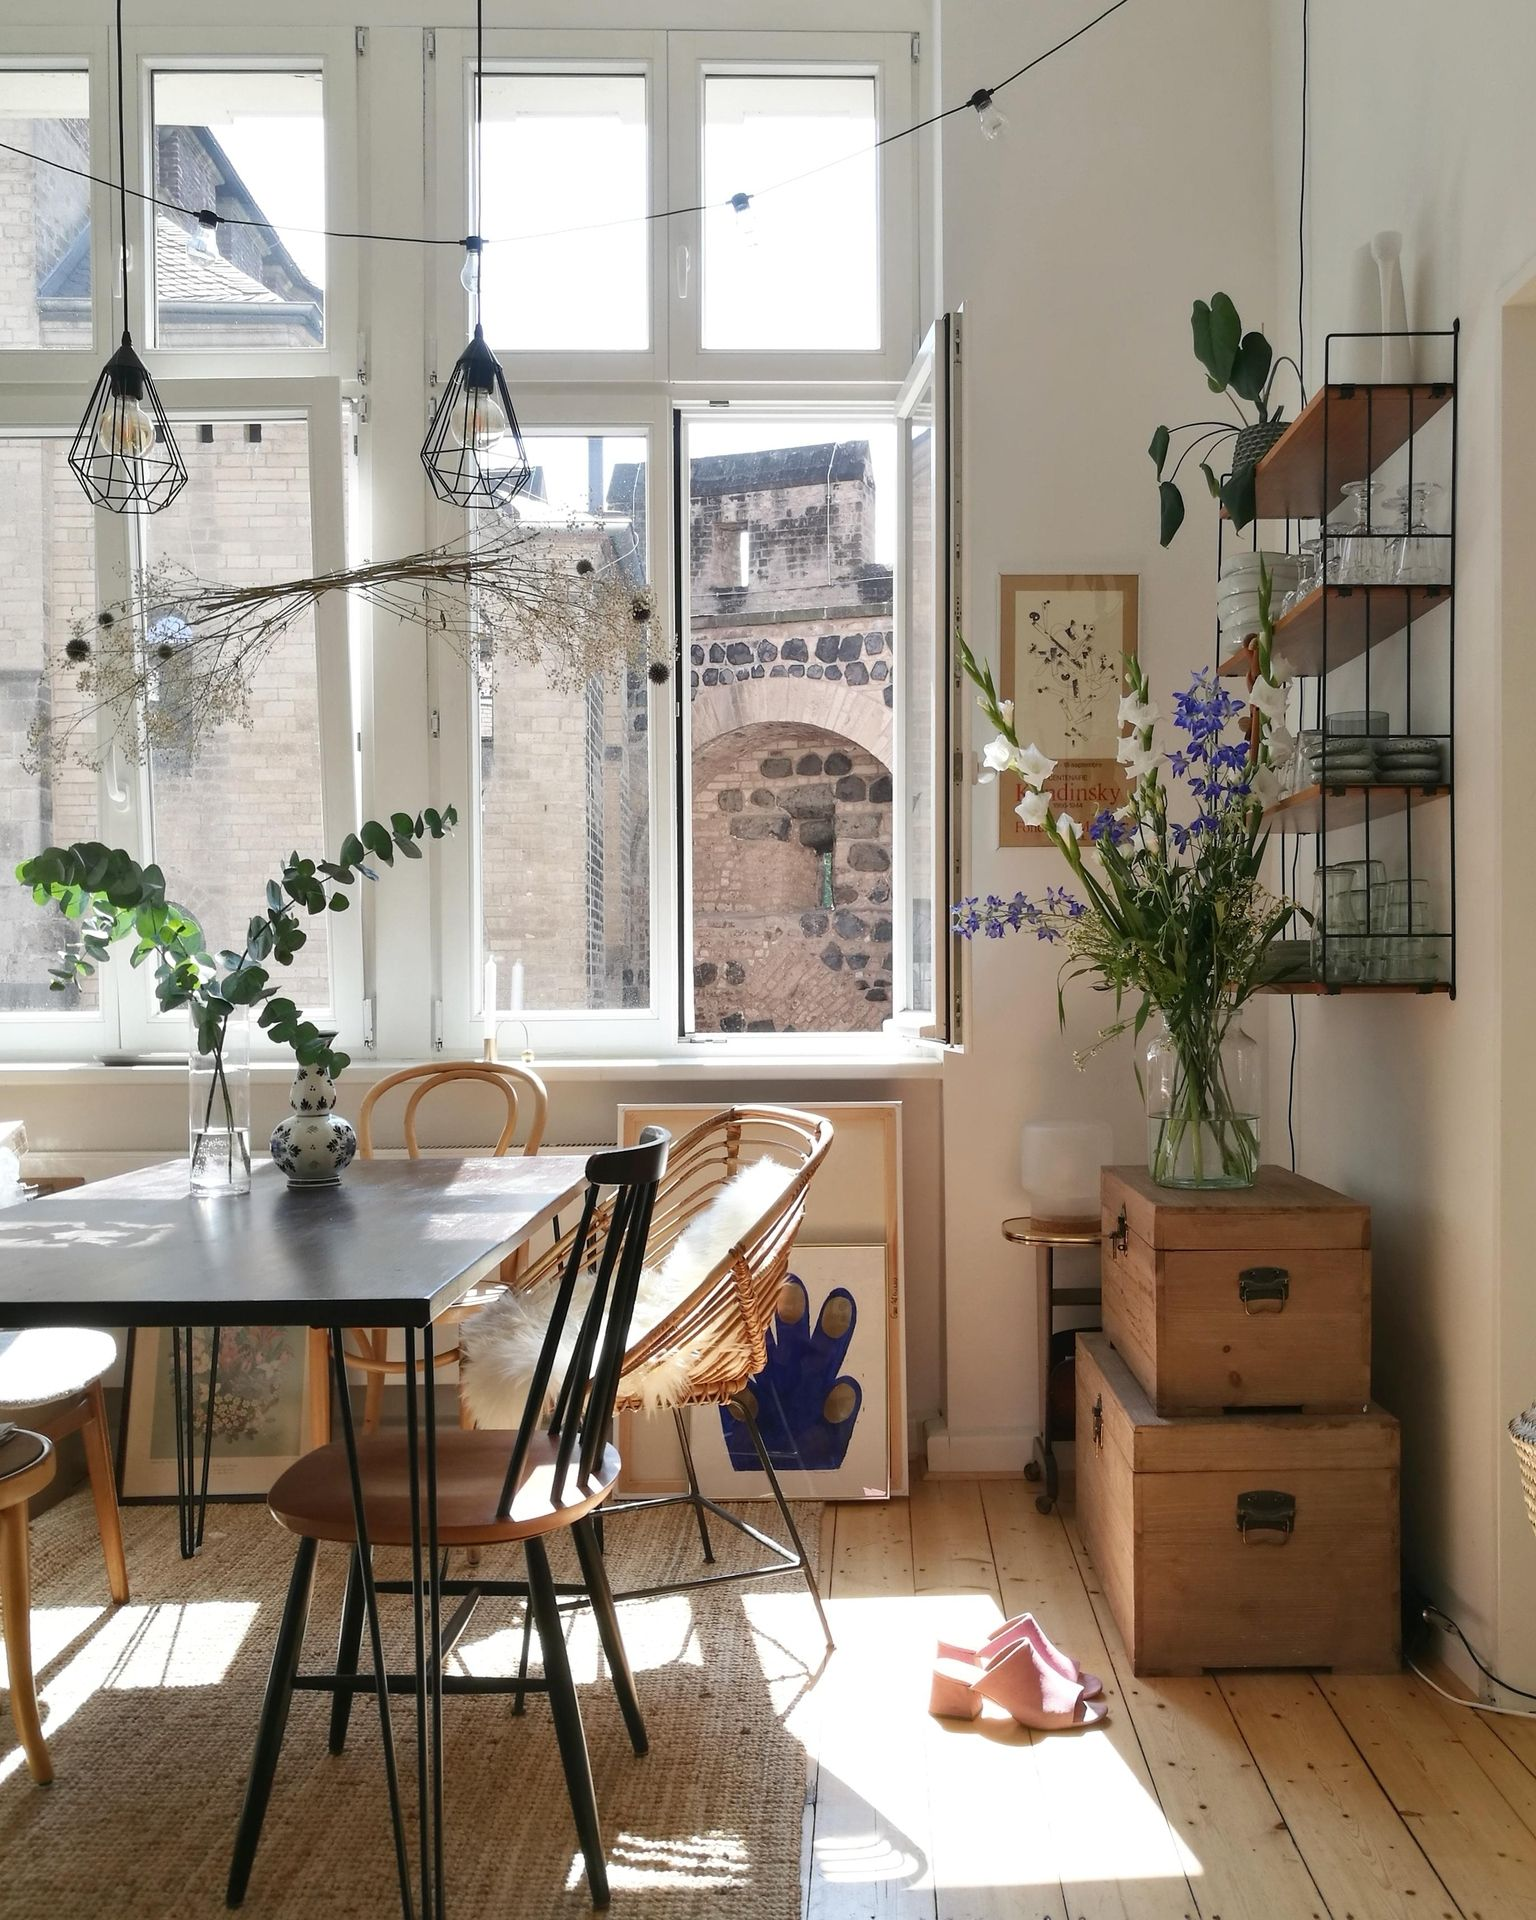 Houzz Küche Altbau Küche Esszimmer Sonne Altbau In 2019 Rooms Home Decor